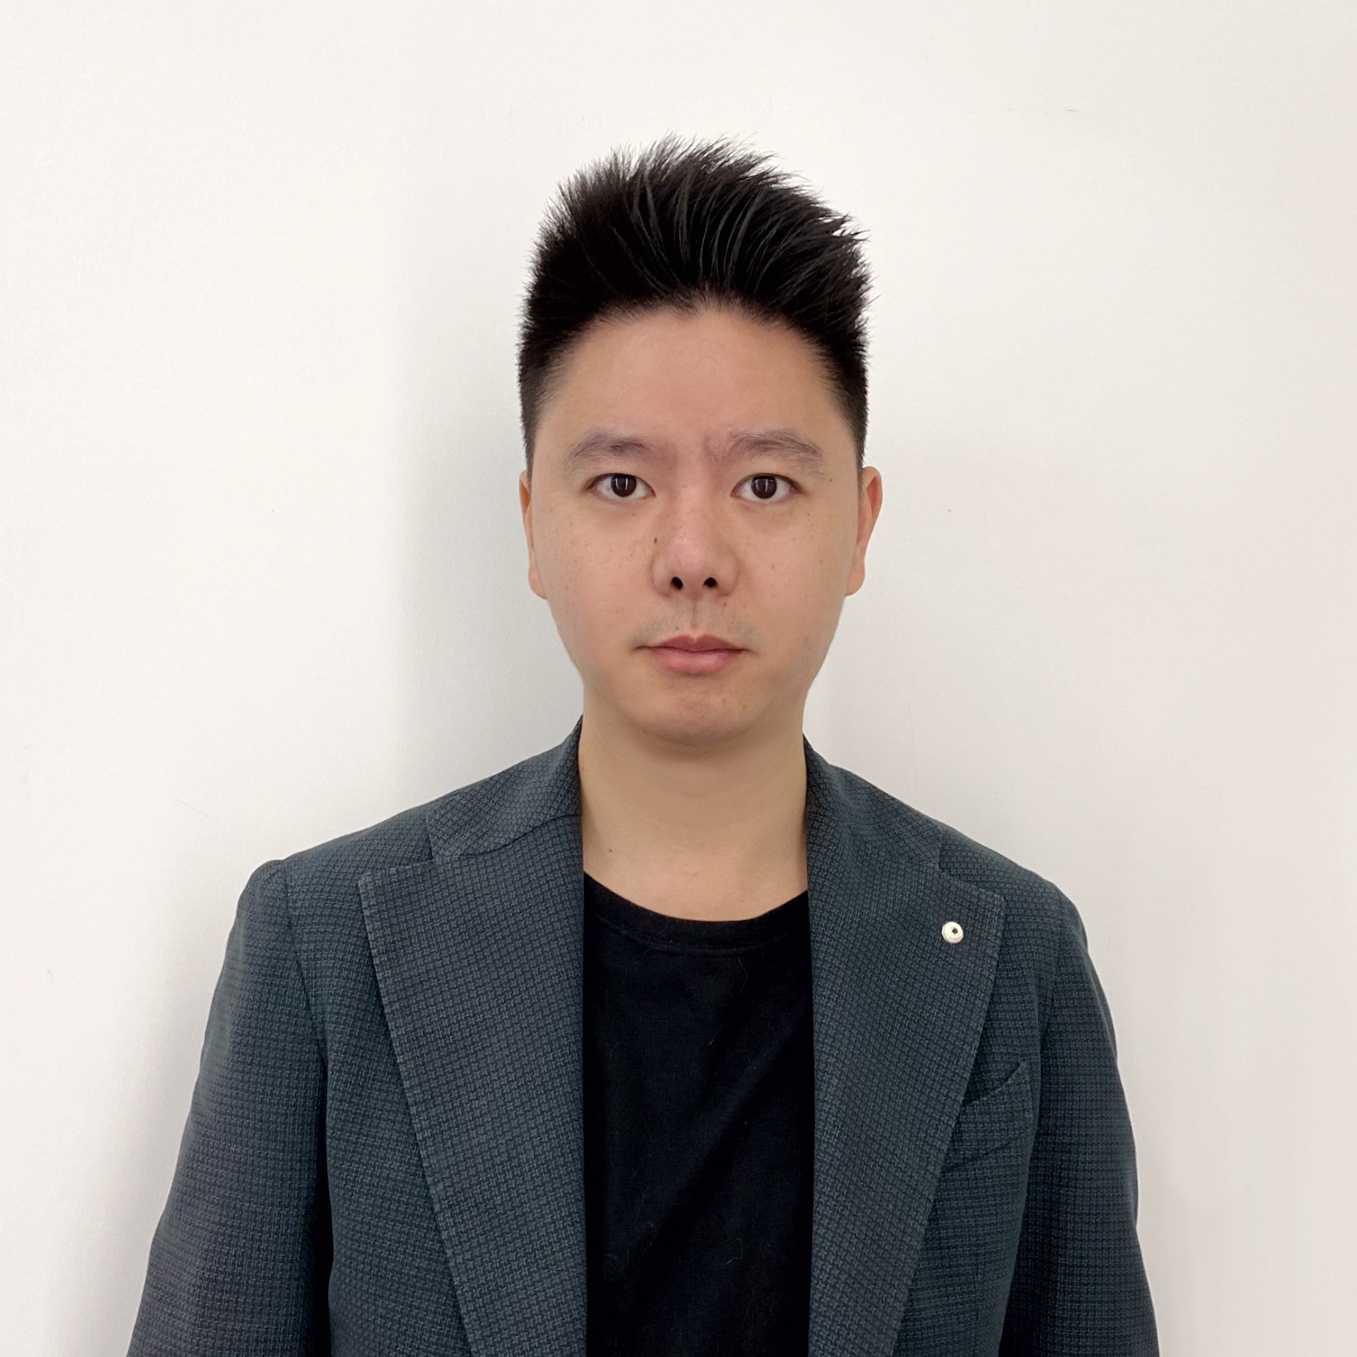 Shun Hou Practice Head of Consumer and Corporate Finance, RGF Professional Recruitment China, Shanghai